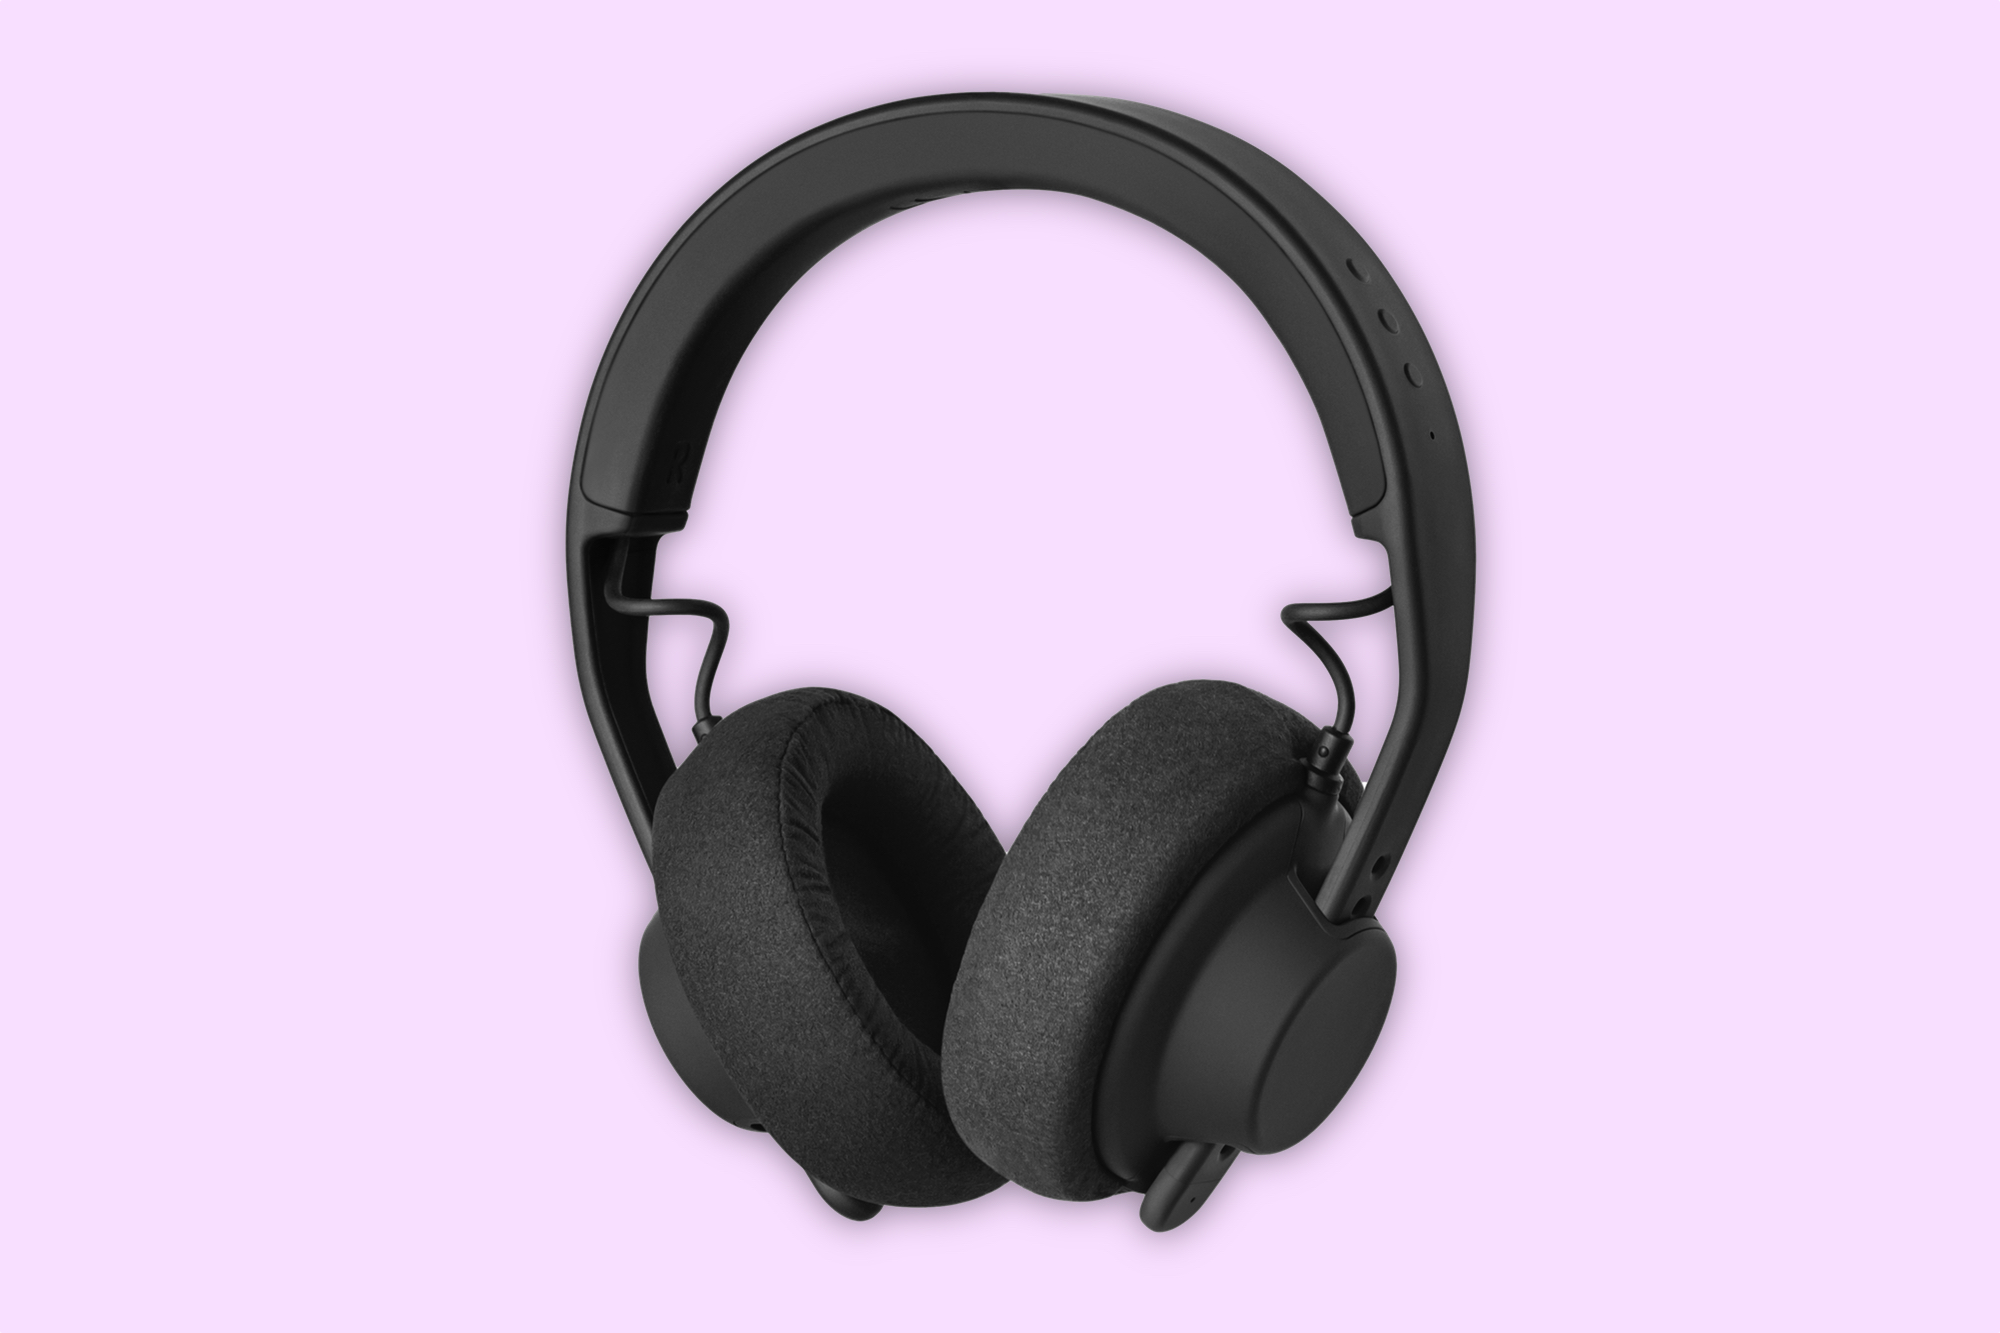 AIAIAI H05 review: A wireless upgrade for your TMA-2 headphones